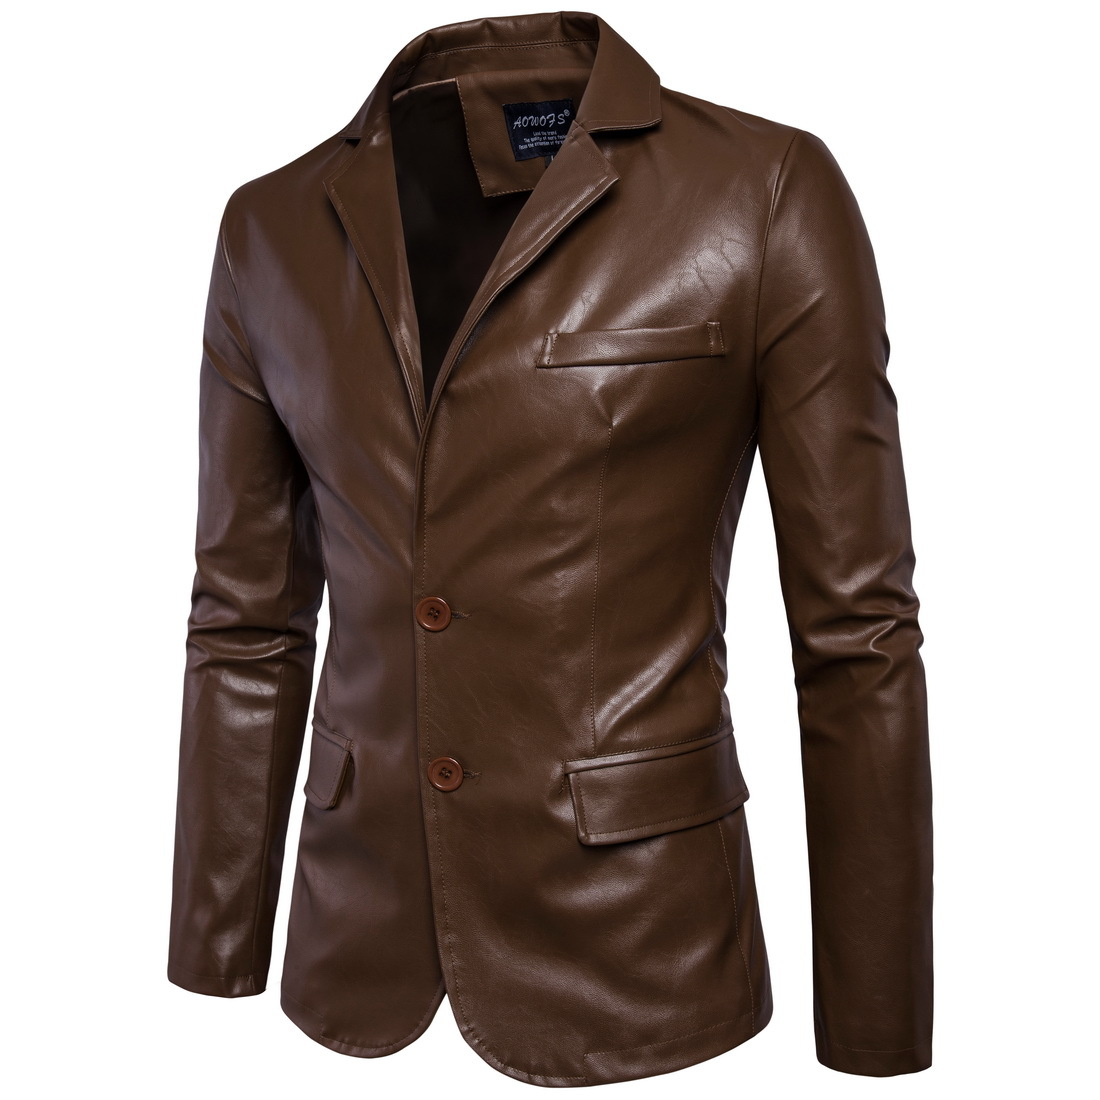 Sumitong men's autumn and winter new style leather coat large motorcycle coat men's Korean slim pure color Lapel leather coat